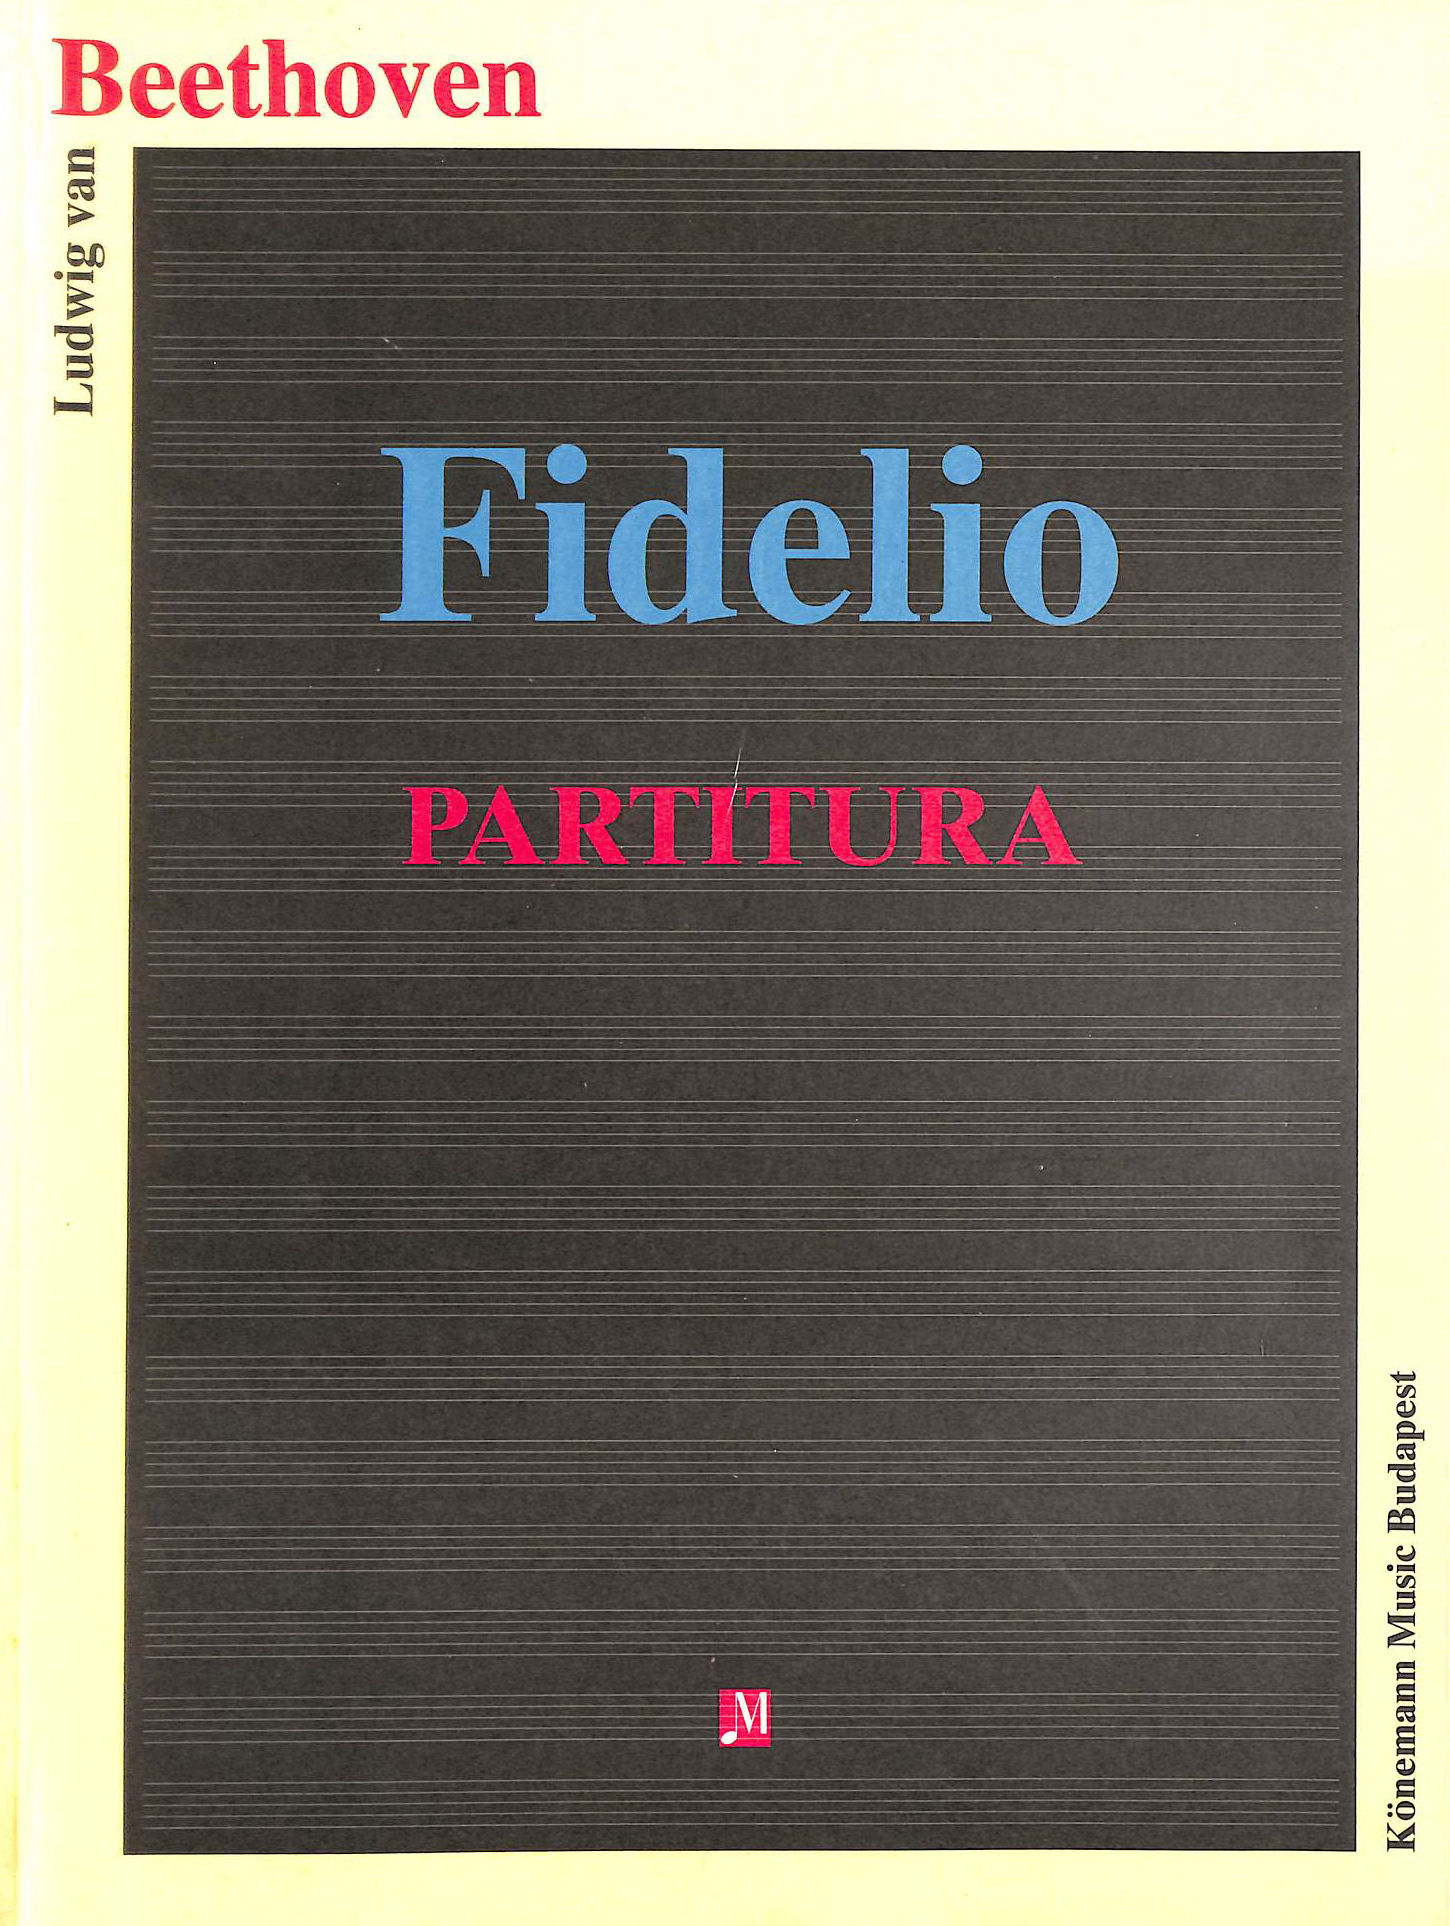 Image for Beethoven: Fidelio Partitura